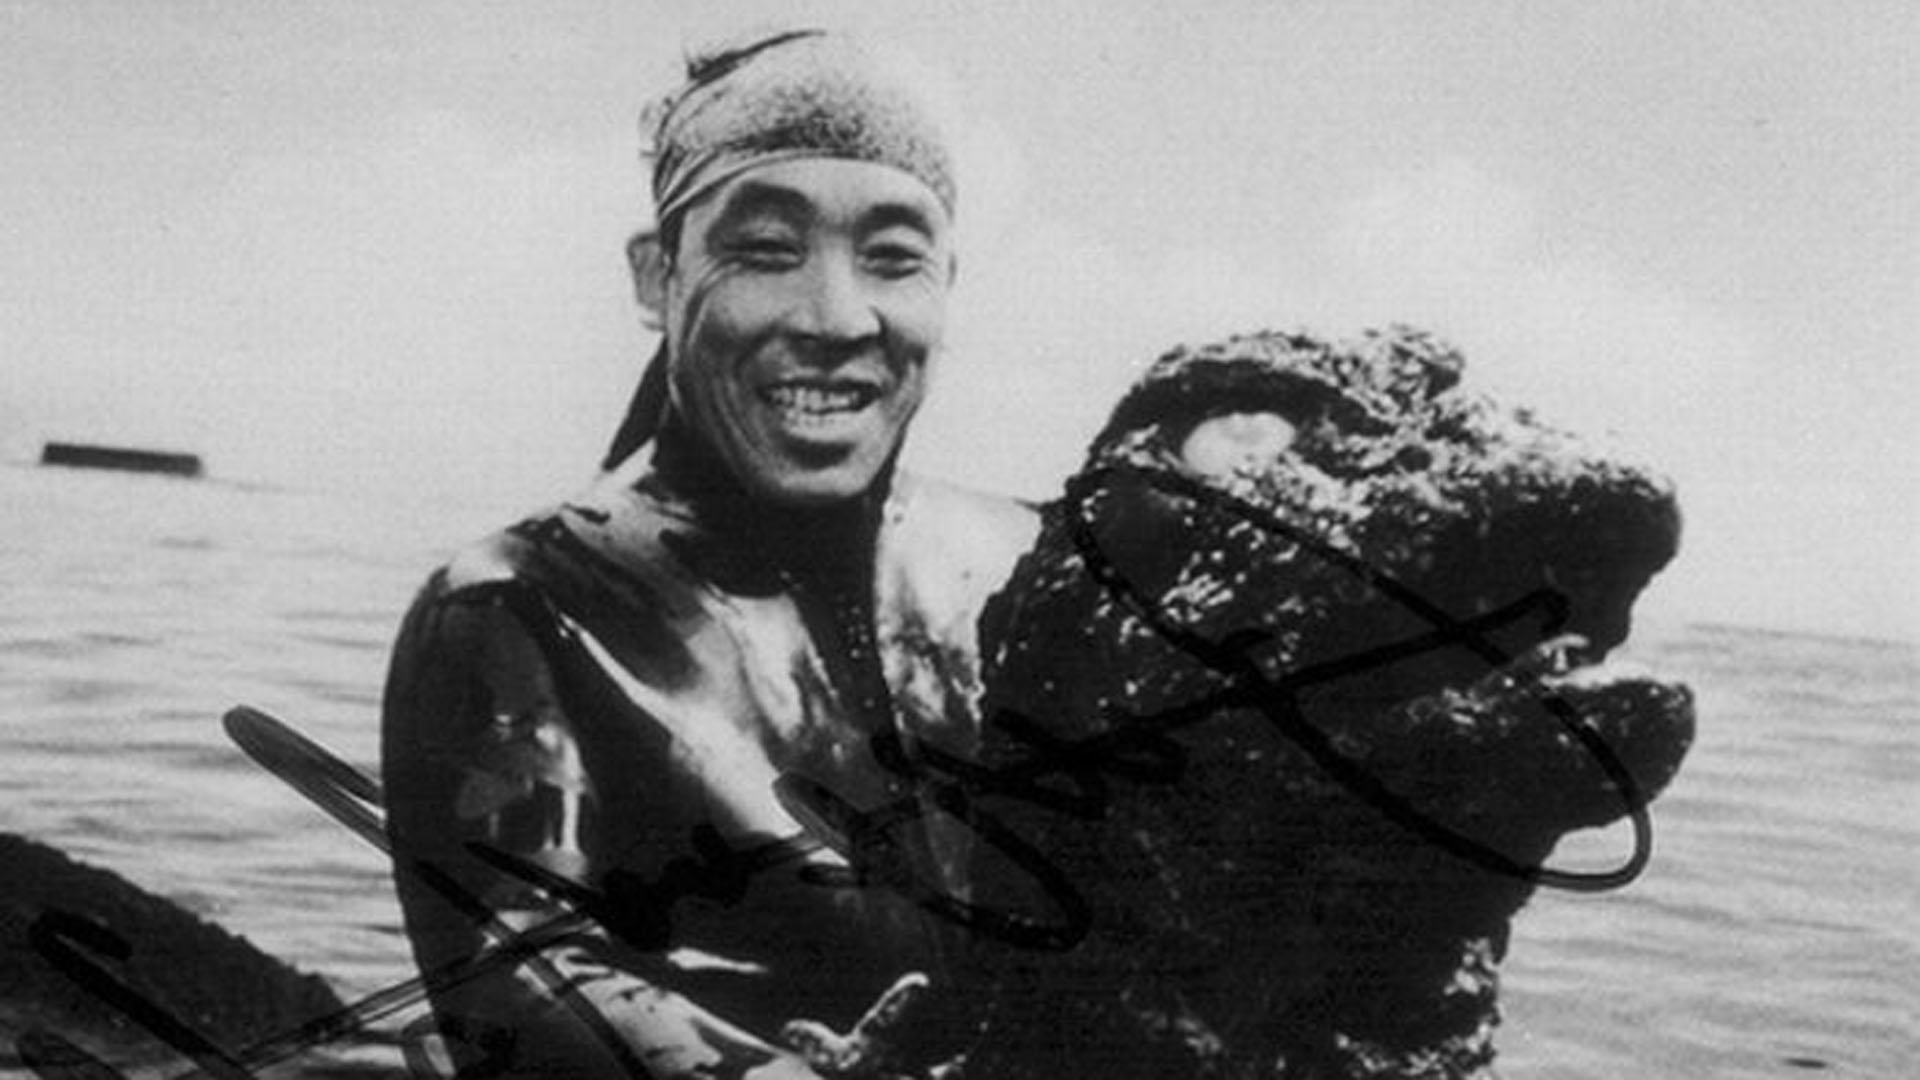 Haruo Nakajima played the part of Godzilla - and many other Toho studios monsters - for more than 20 years.